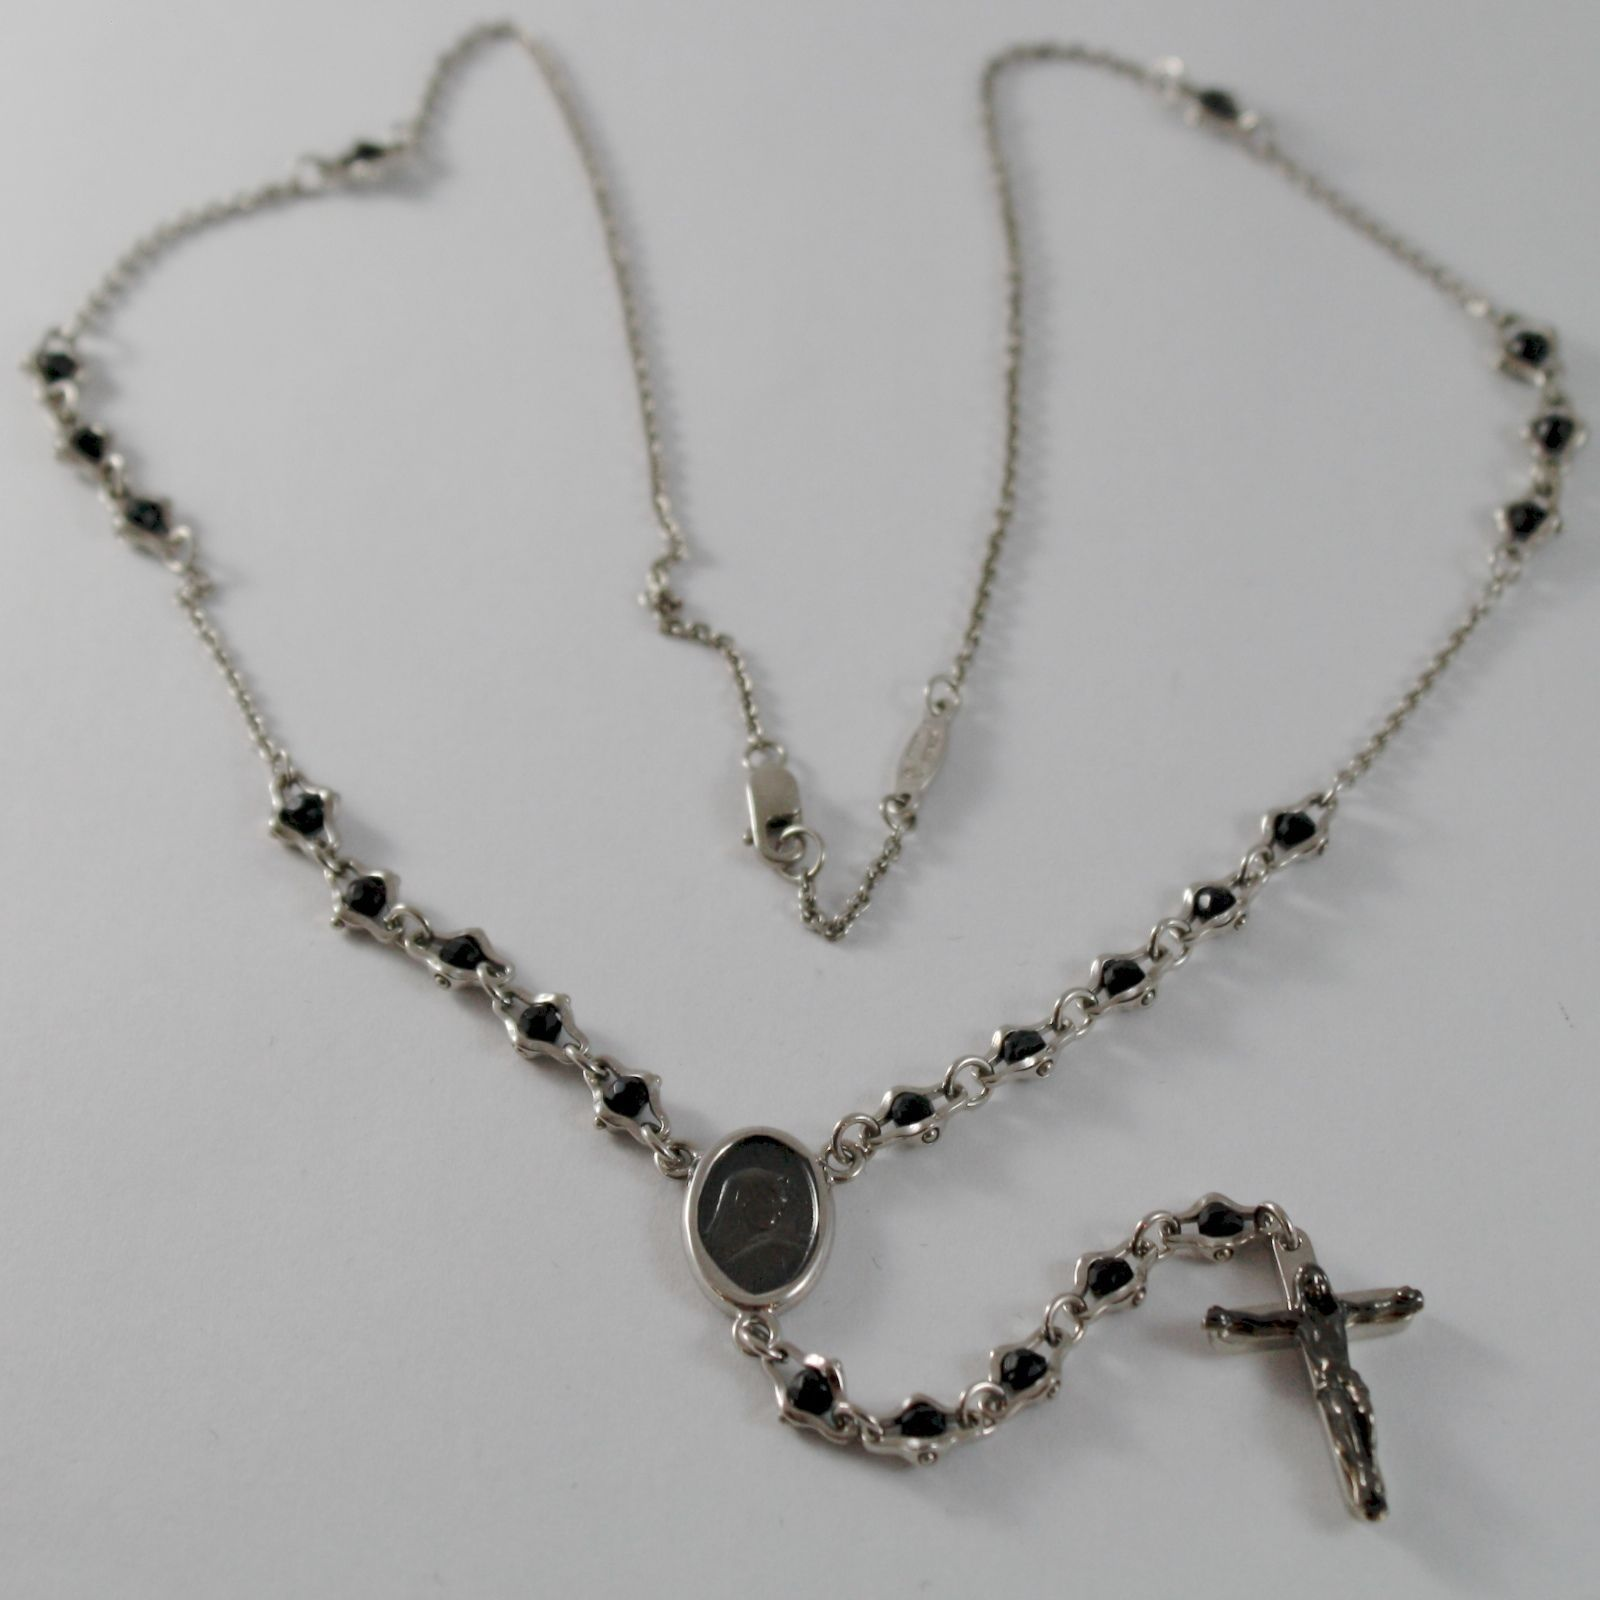 925 SILVER NECKLACE, ONYX, VIRGIN MARY MEDAL, CROSS BY ZANCAN MADE IN ITALY